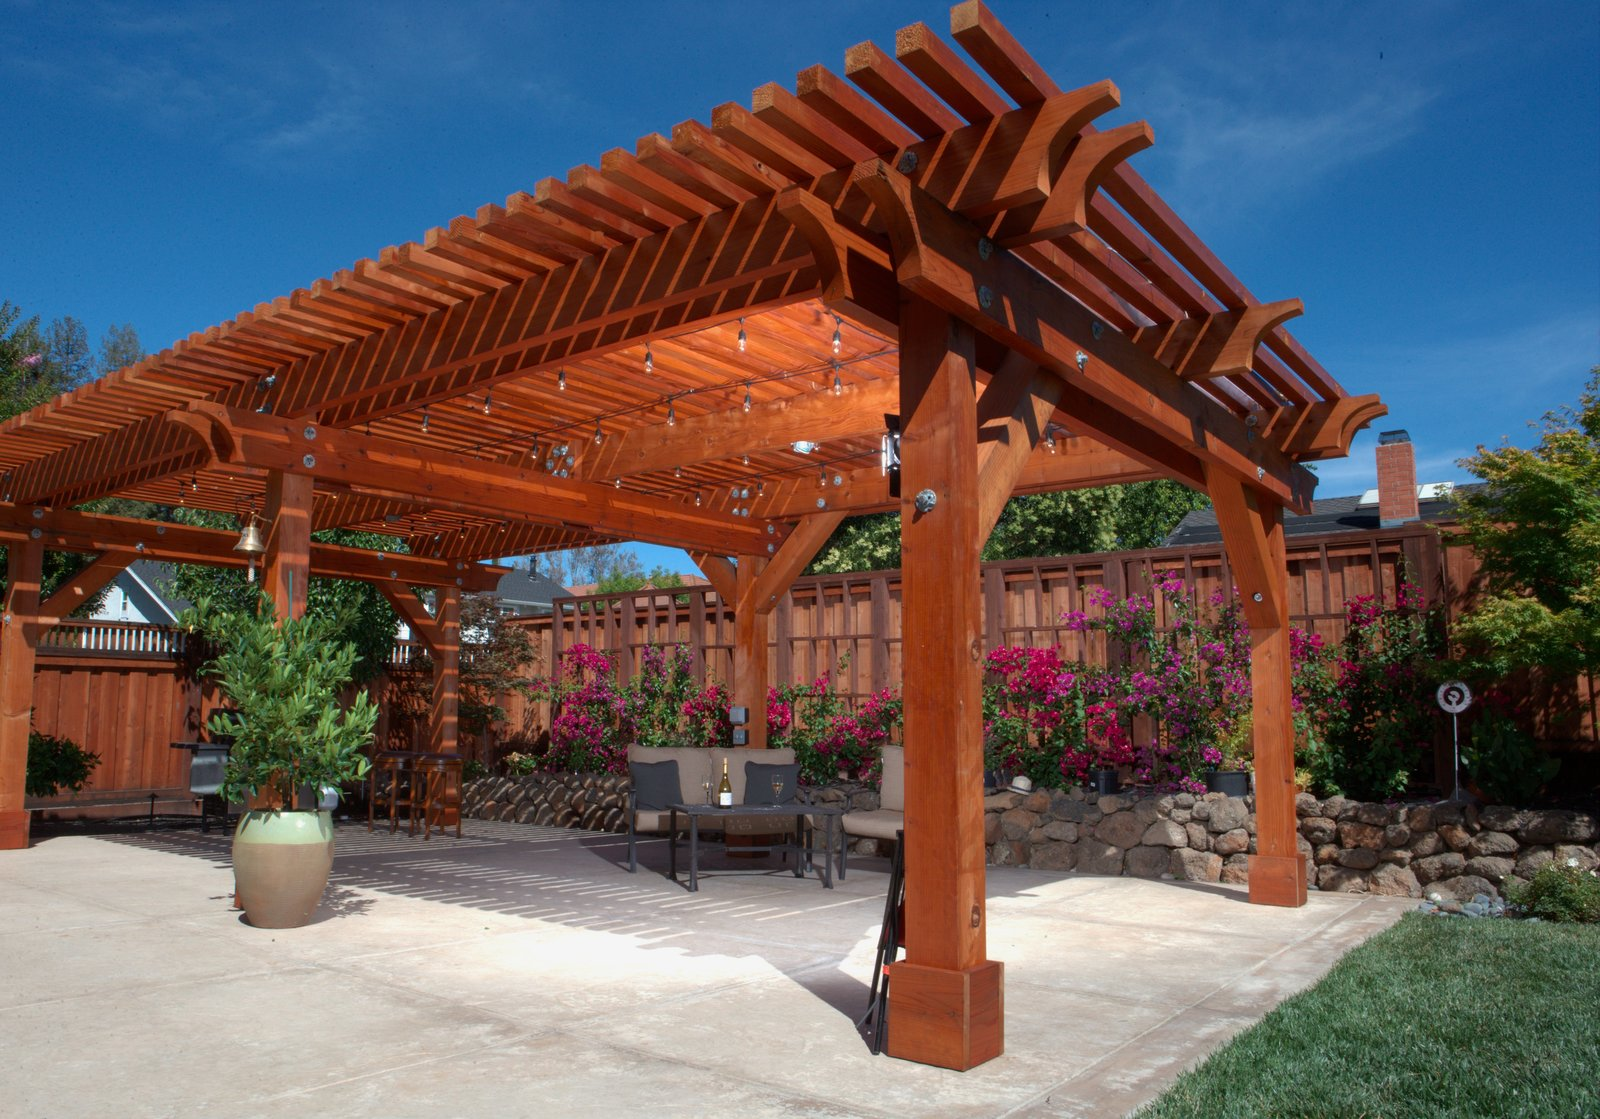 A versatile material, redwood can be left to turn a rustic, silver-tone gray, or finished to take on a glowing tint. A pergola such as this one, which will accompany Humboldt Redwood Company at Dwell on Design, can imbue your backyard space with both stateliness and charm.  Pergolas by Natalie Pinkerton GRI